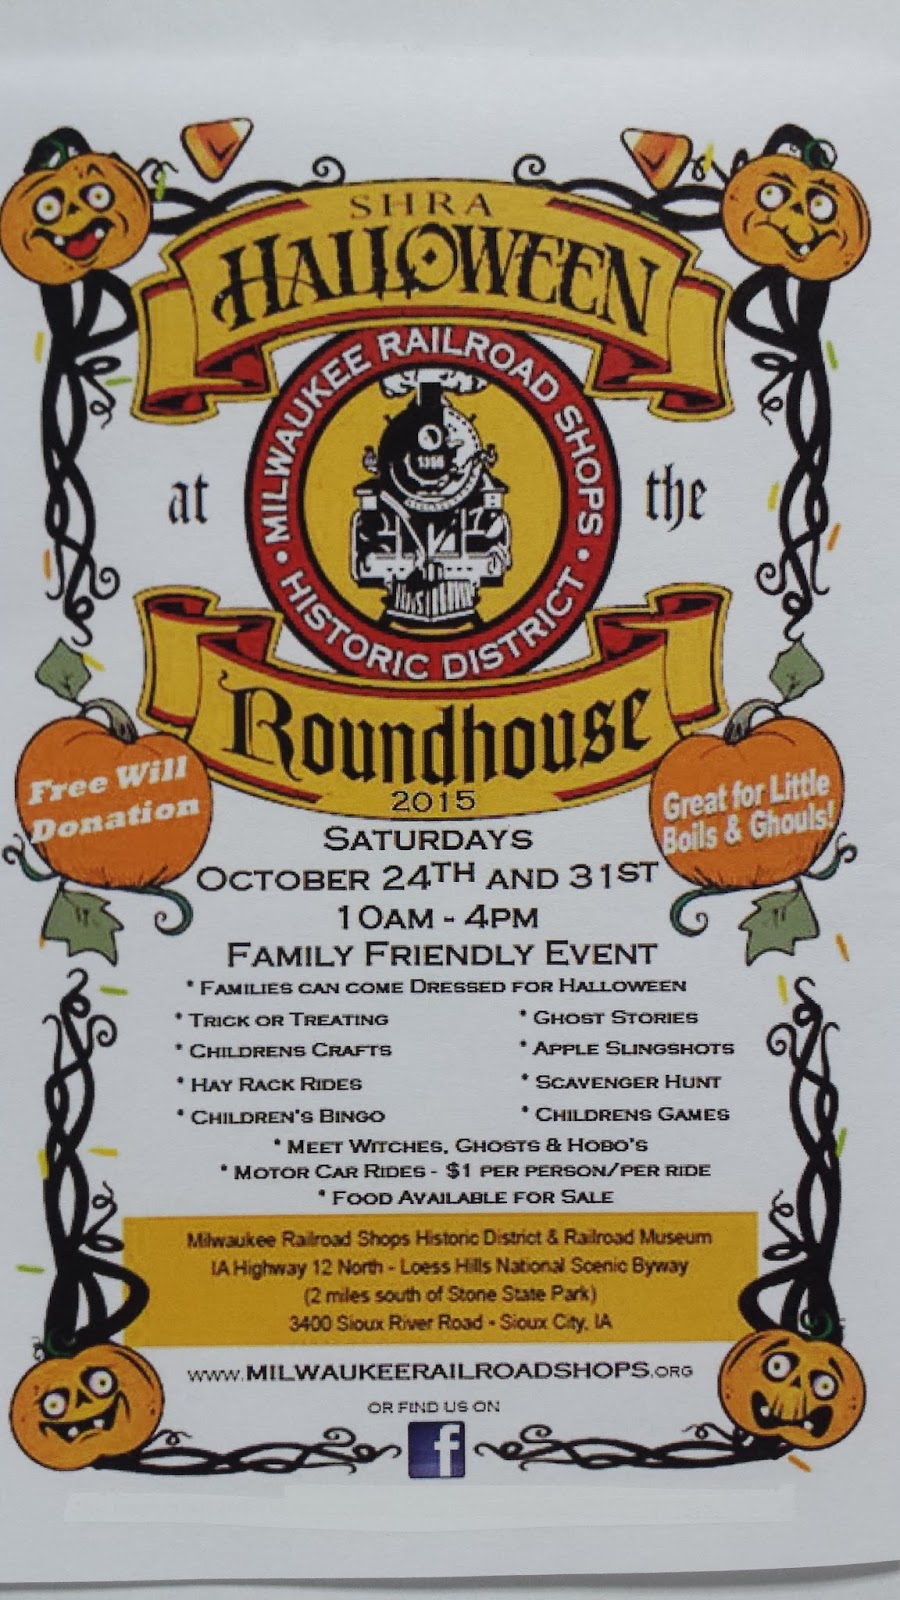 halloween at the roundhouse event will be held the last two saturdays of october this year - Halloween Date This Year